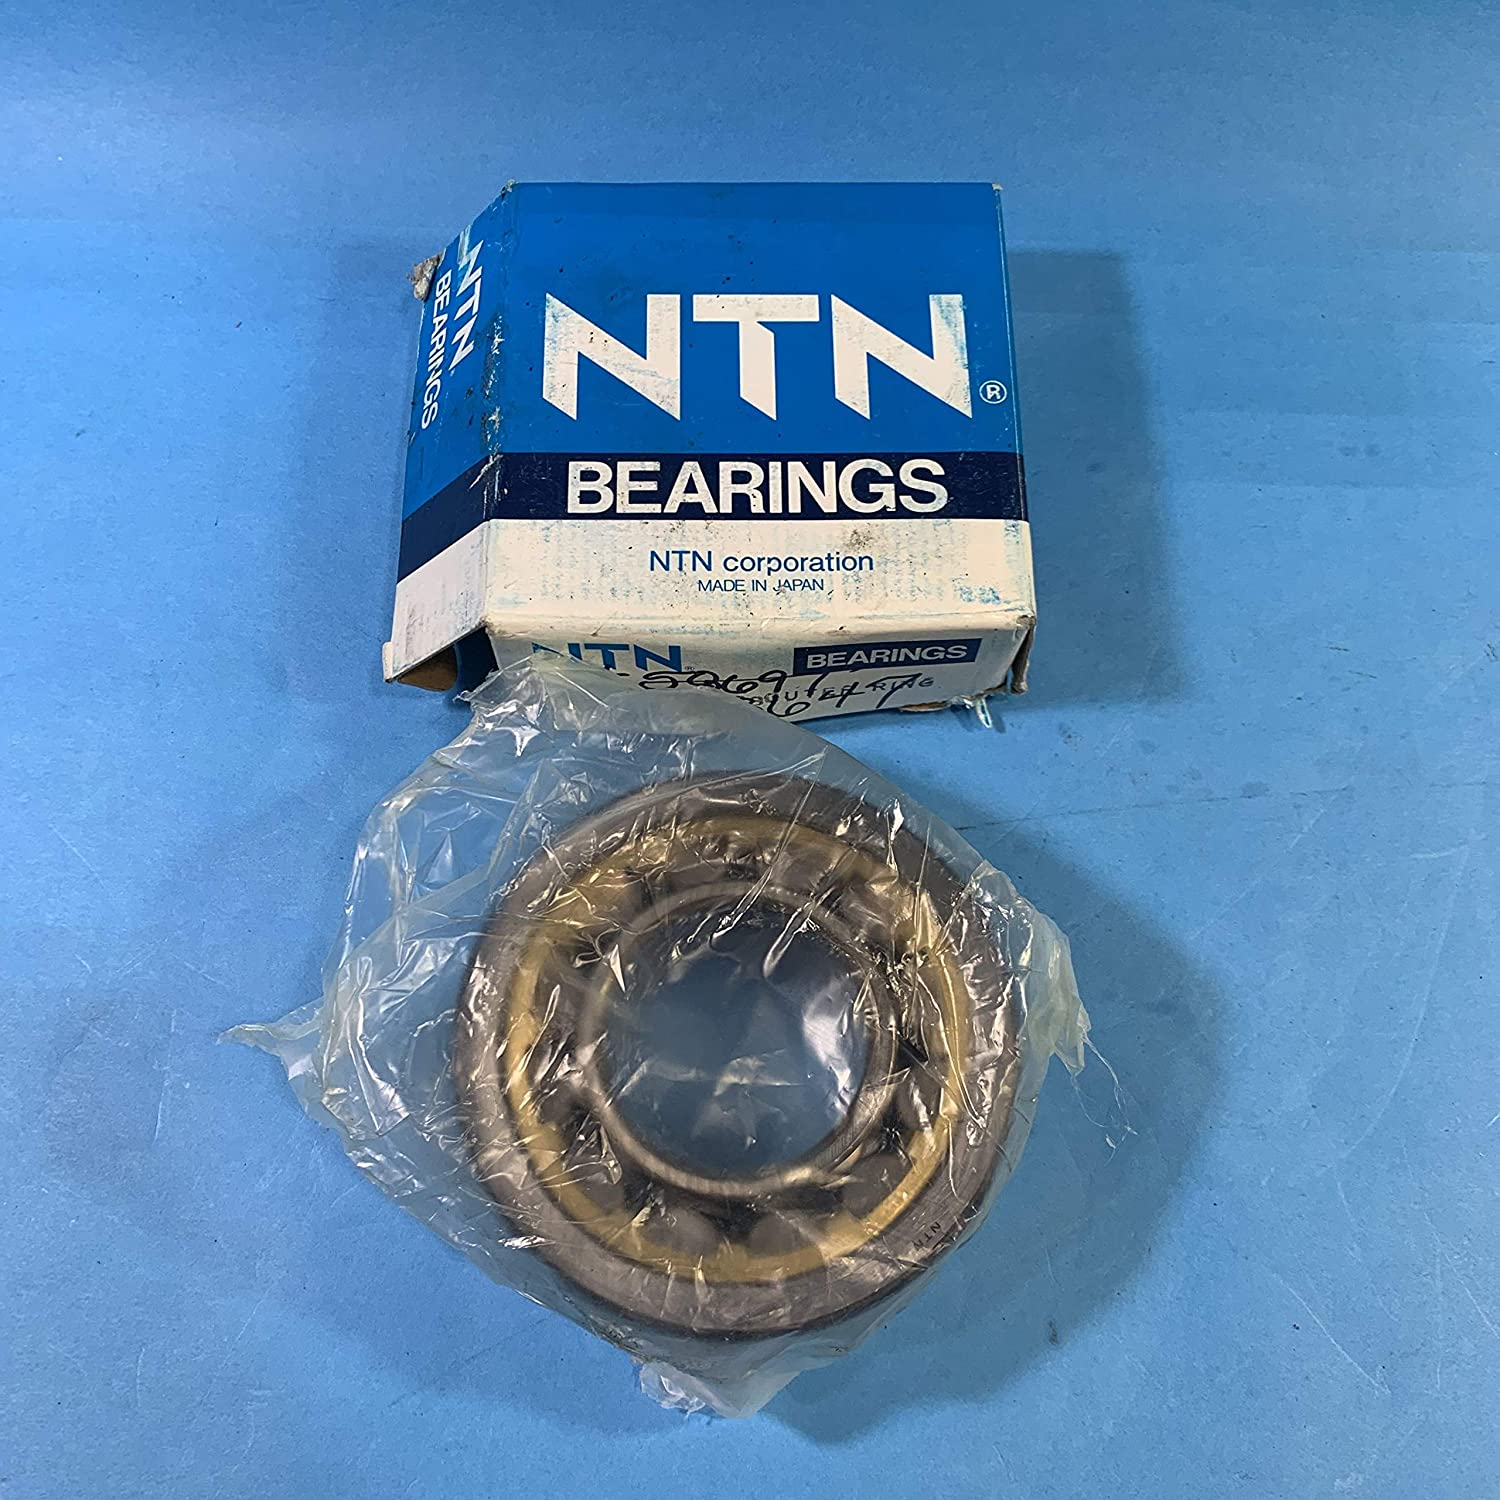 NTN CYLINDRICAL Lowest price challenge ROLLER It is very popular NU2311C3 BRG